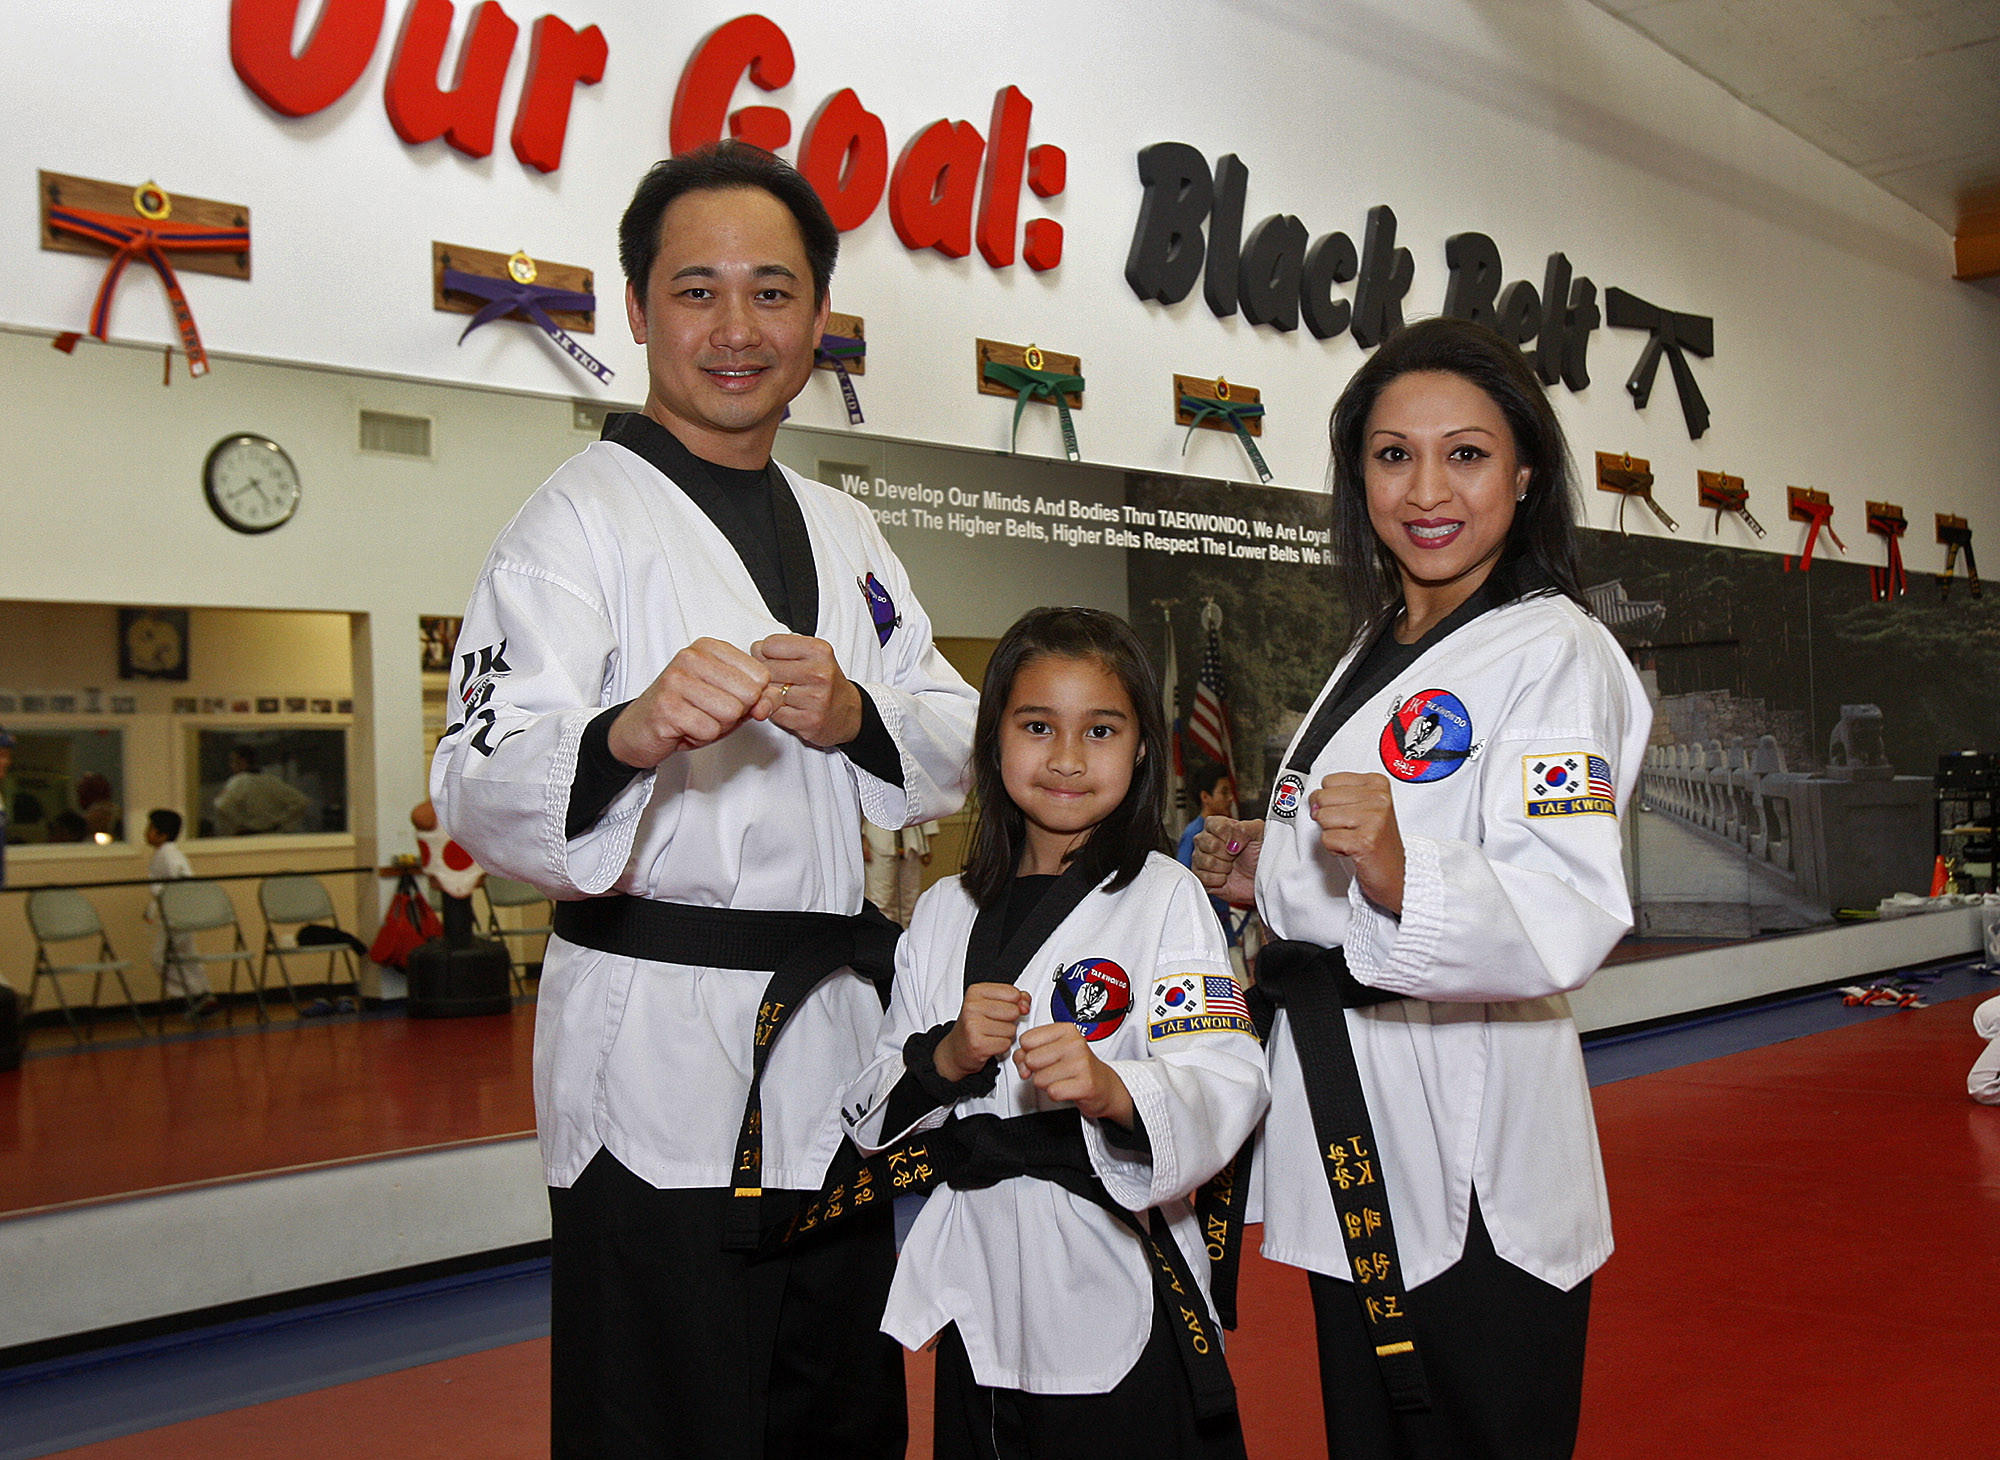 Hugh, Stella, 9, and Tessa Yao, all first degree black belts, at JK Tai Kwon Do in Glendale on Tuesday, January 7, 2014. The three became black belts in December after completing a 7 hour advancement test, ending the test by breaking, with their hands, a block of concrete.